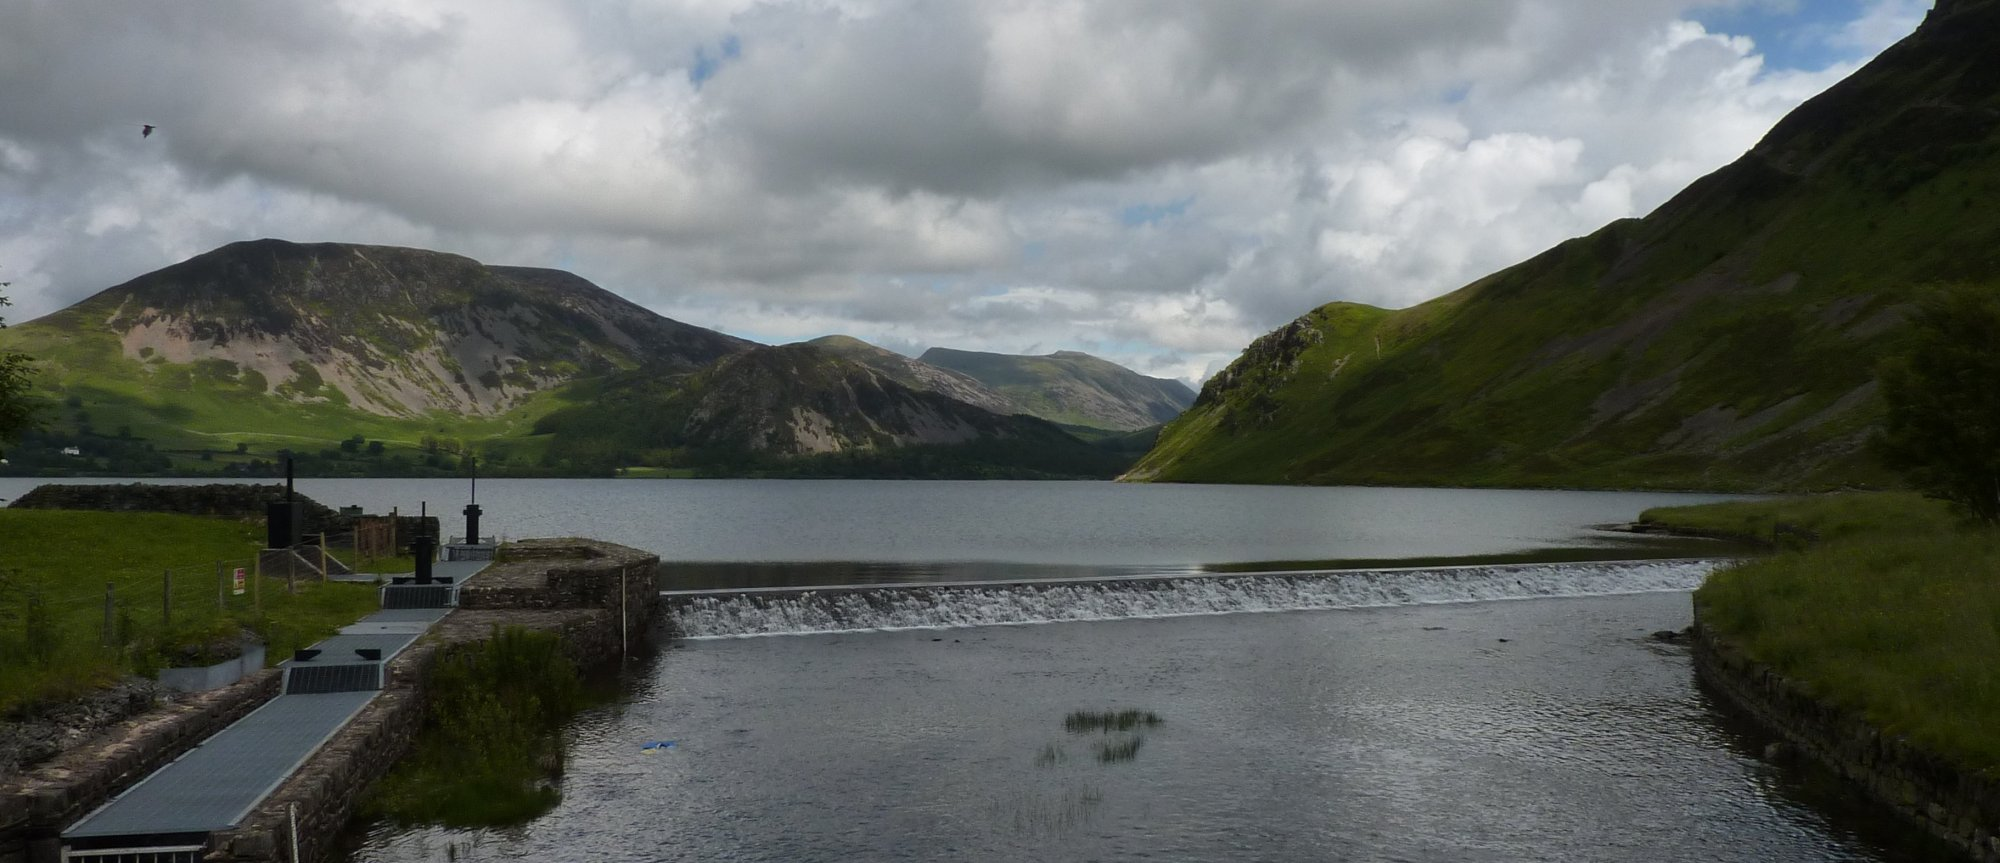 Looking back, a fond farewell to Ennerdale